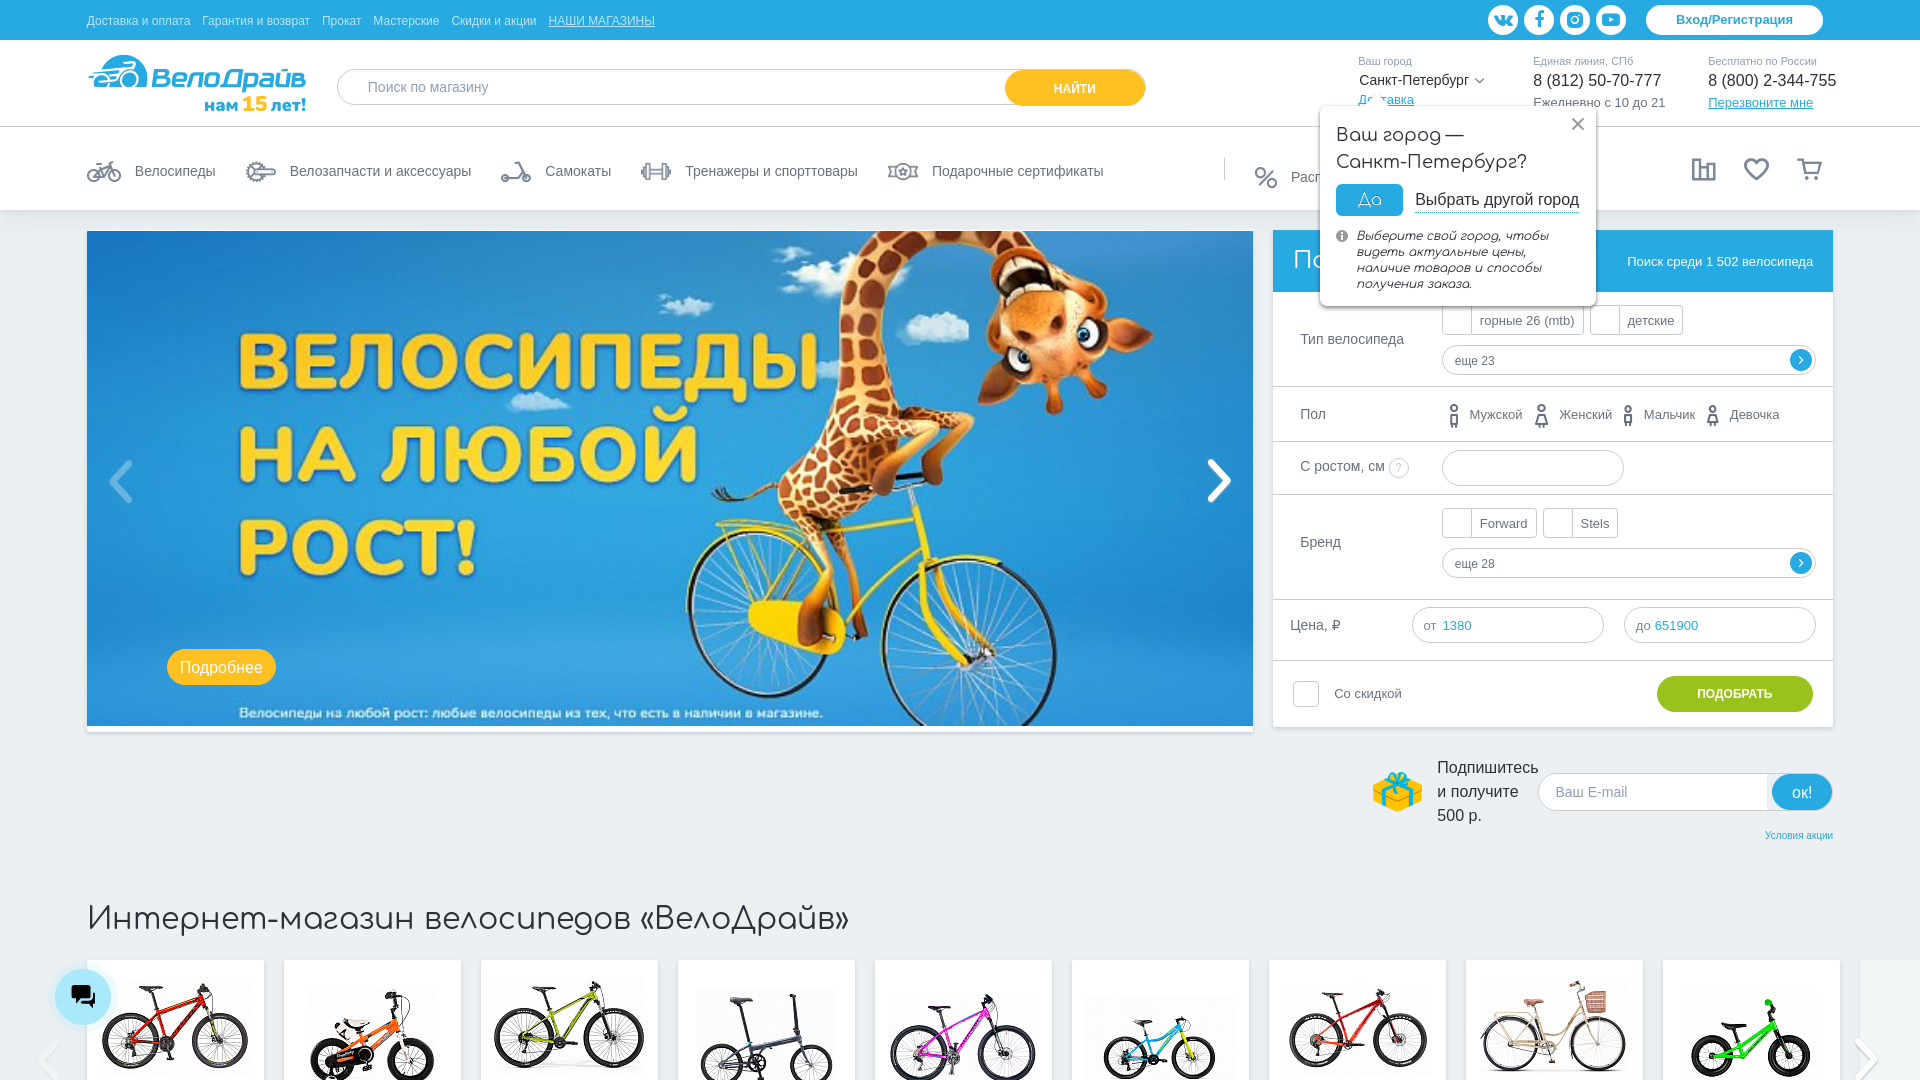 velodrive.ru website